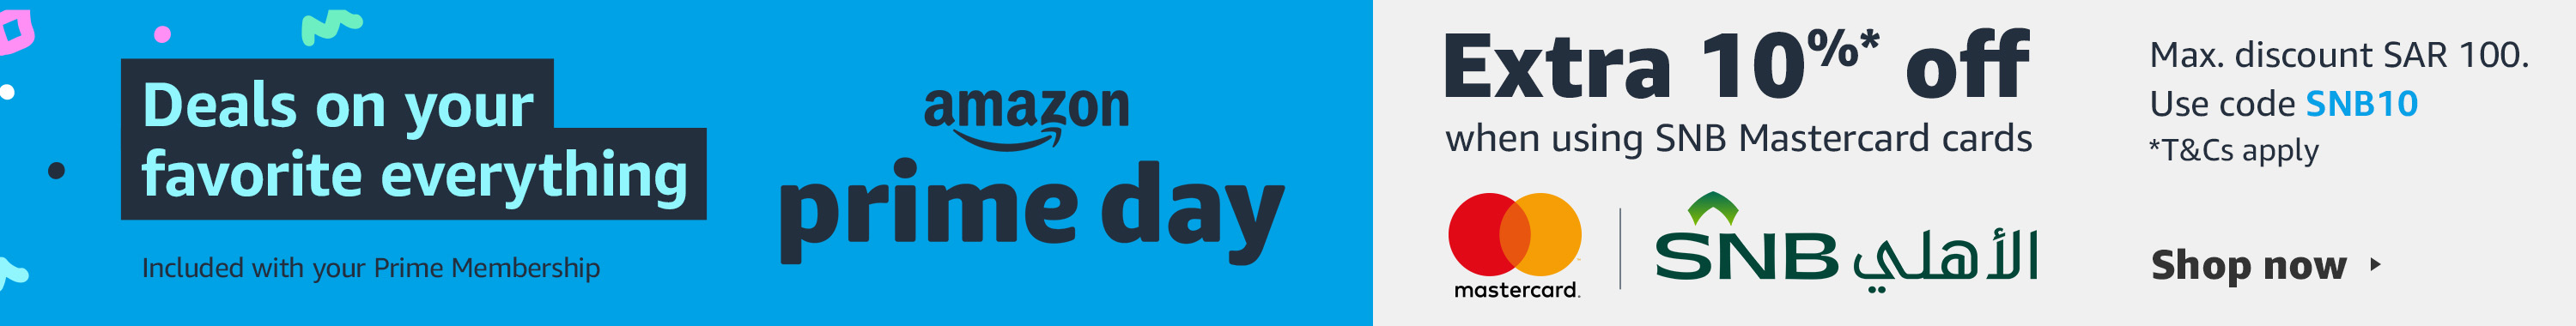 Amazon Prime Day, Extra 10% off when using SNB Mastercard cards